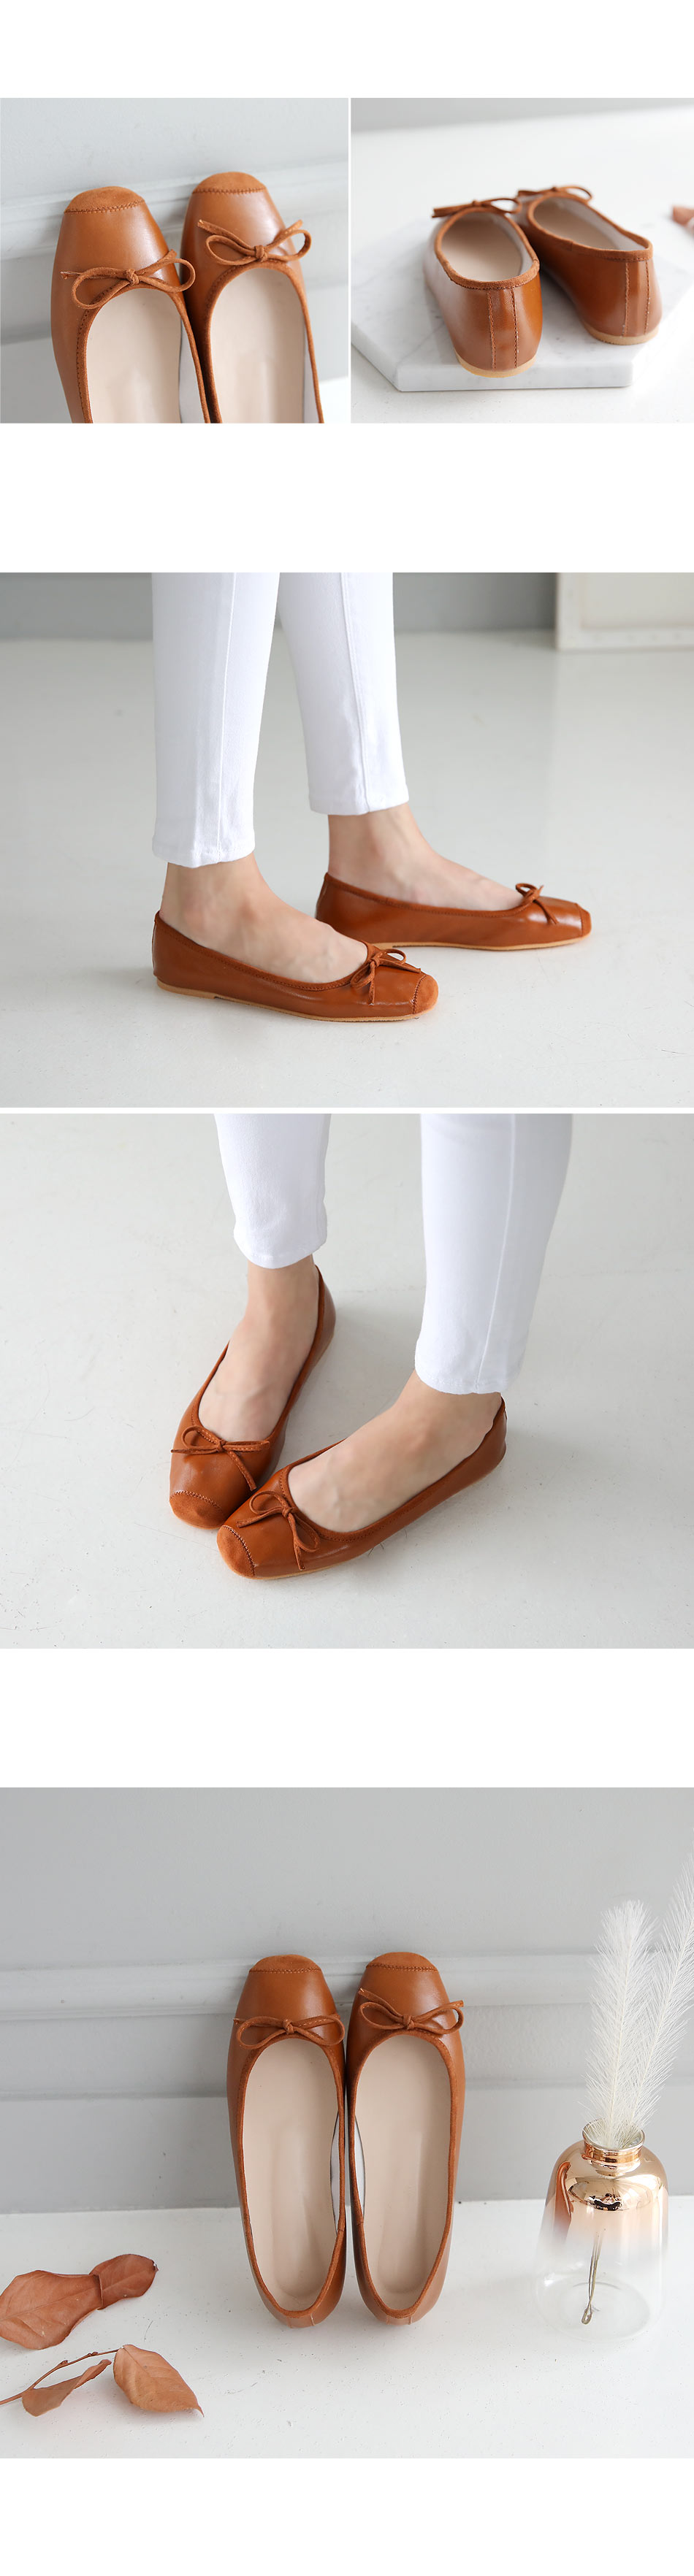 Leopia Flat Shoes 1cm